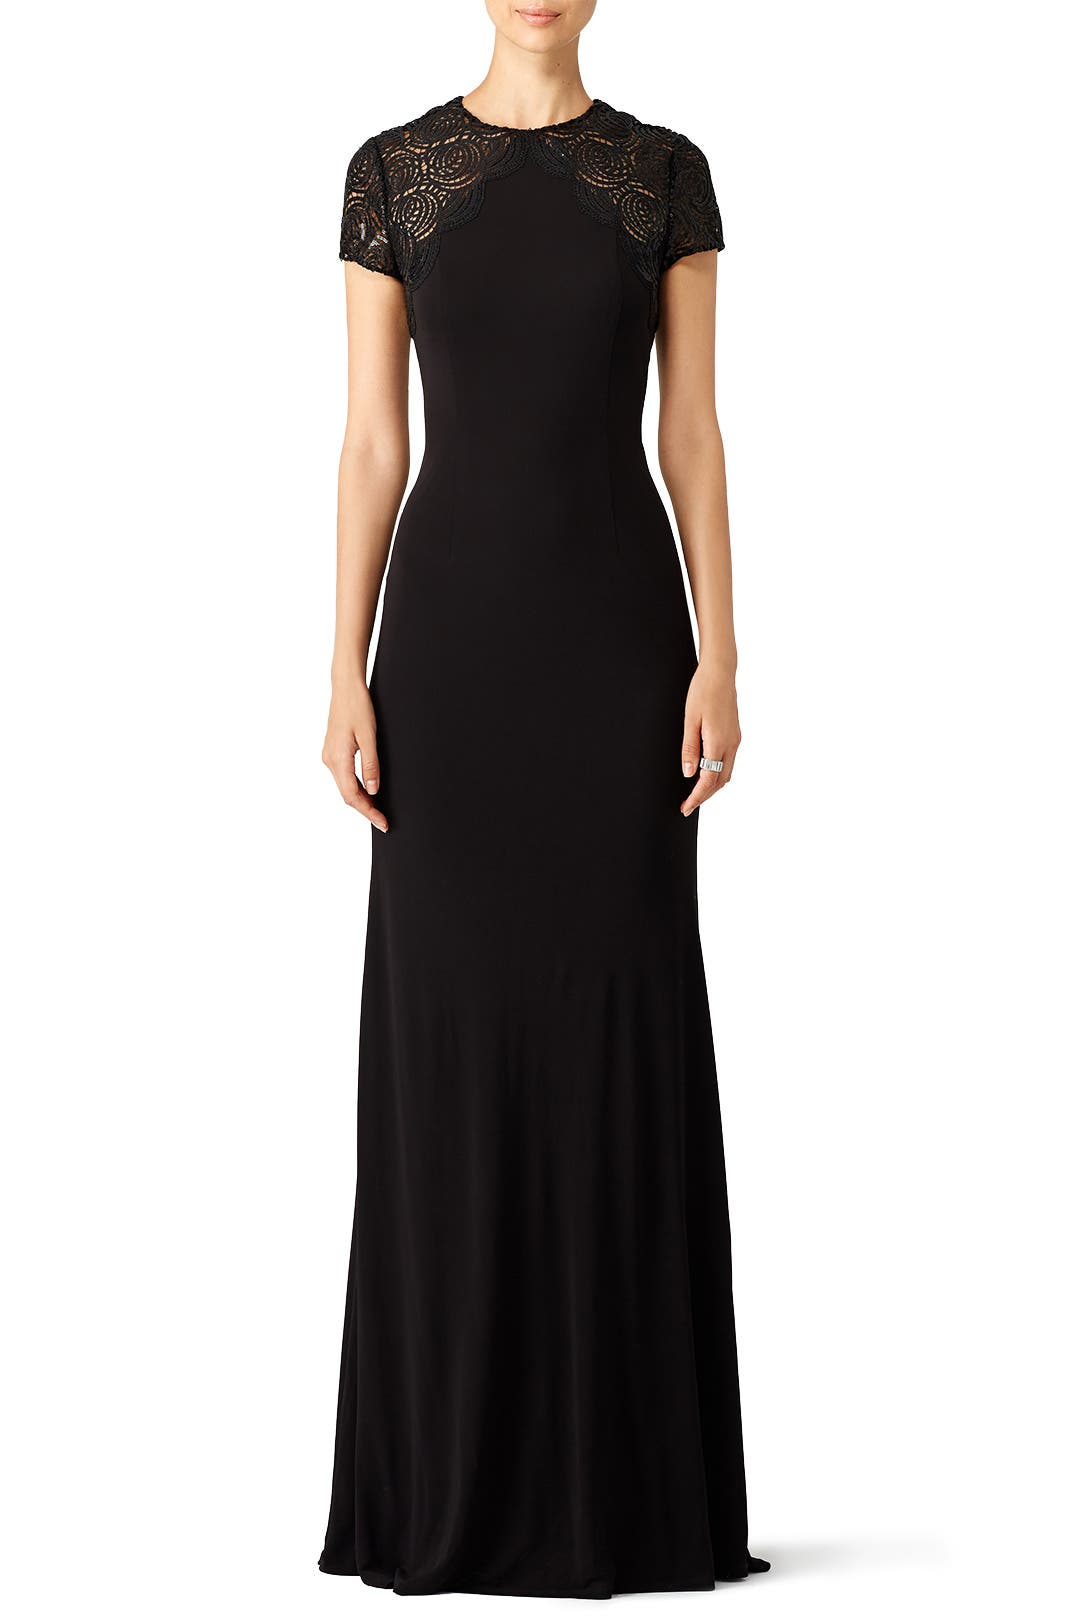 Dresses - David Meister Great selection and prices for Wedding Gifts ...